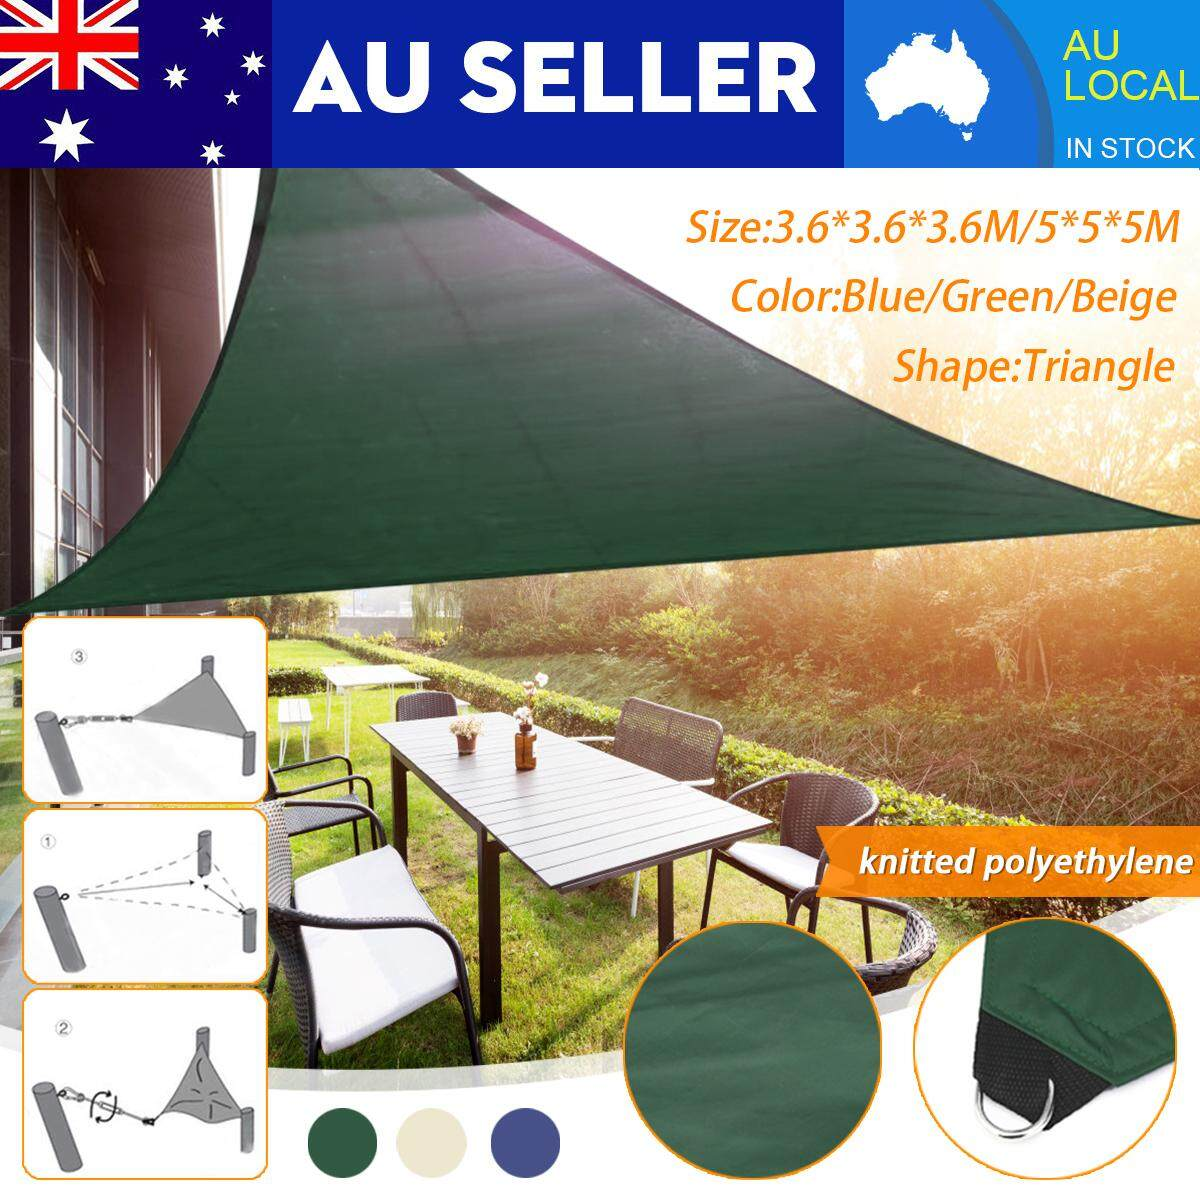 【Free Shipping + Super Deal + Limited Offer】5M/3.6M UV Sun Sail Proof Triangle Outdoor Patio Canopy Top Shelter Yard Cover